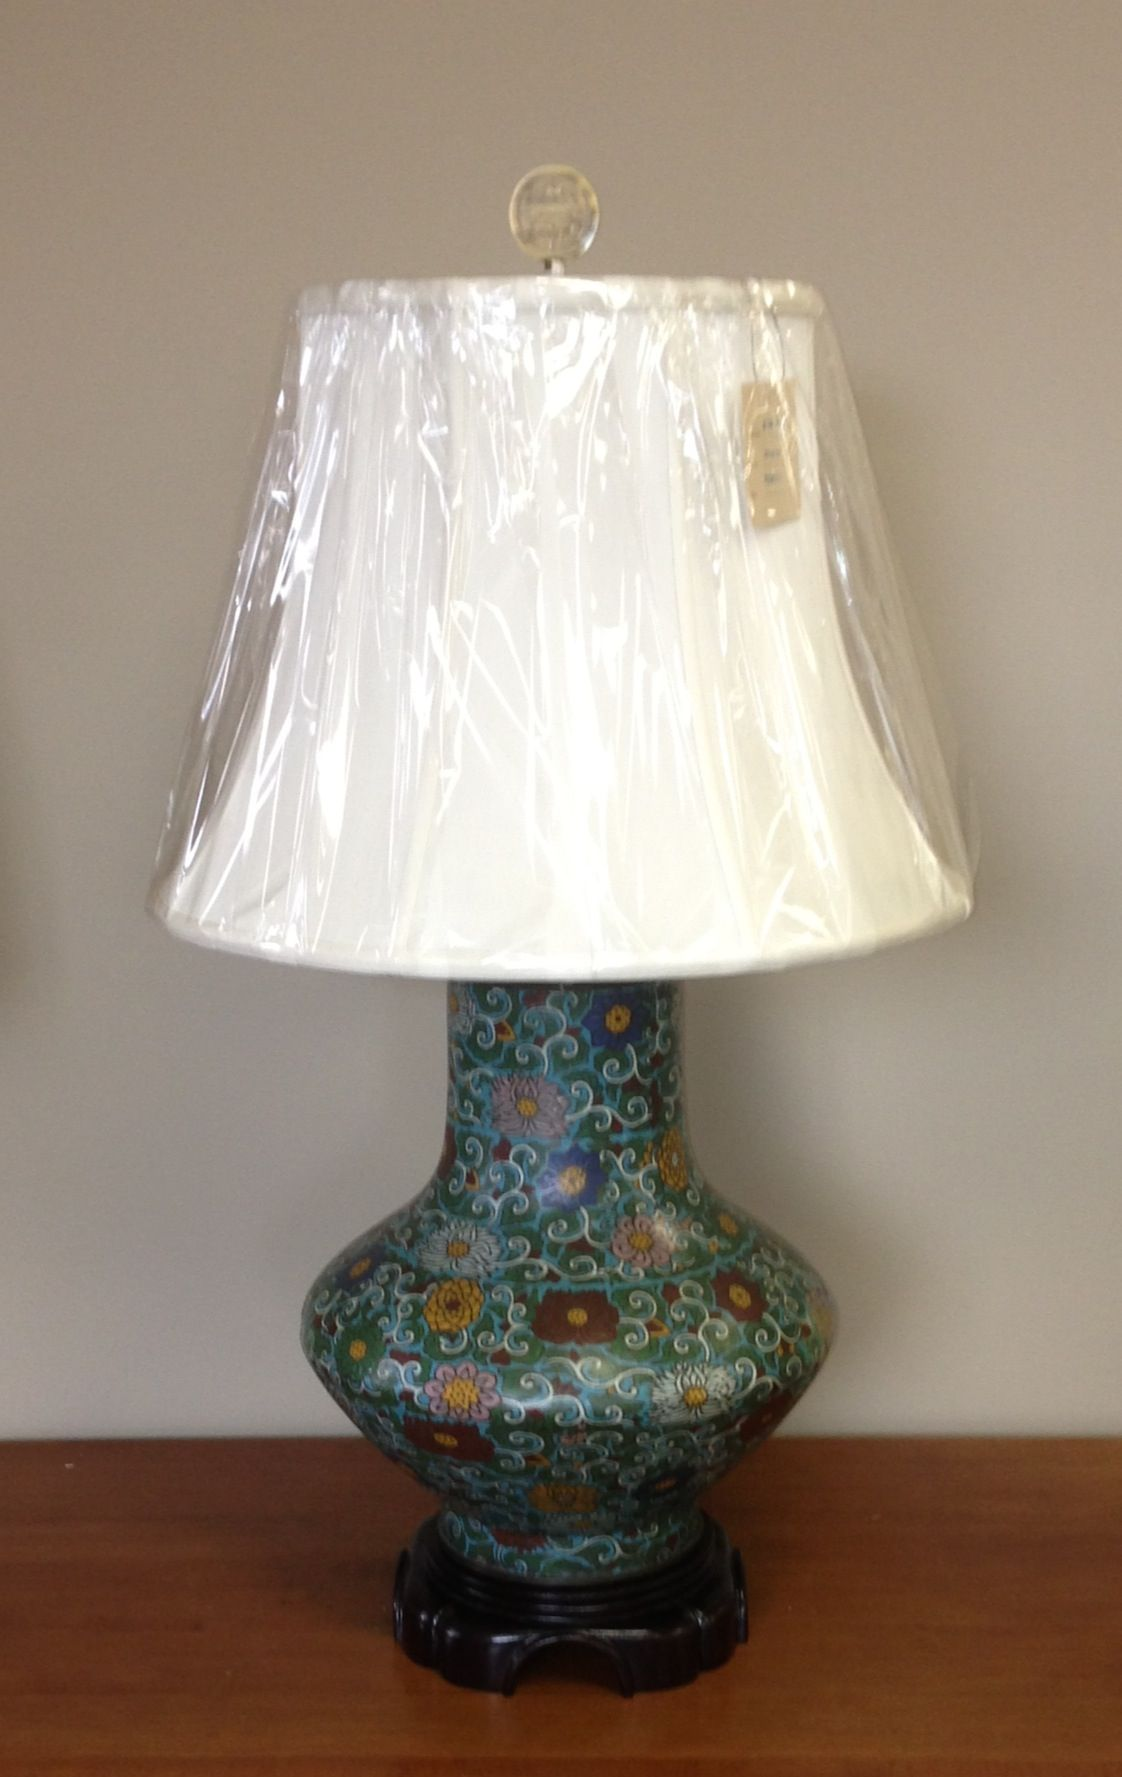 Cloisonne Vase Turned Into A Lamp Lamp Table Lamp Decor